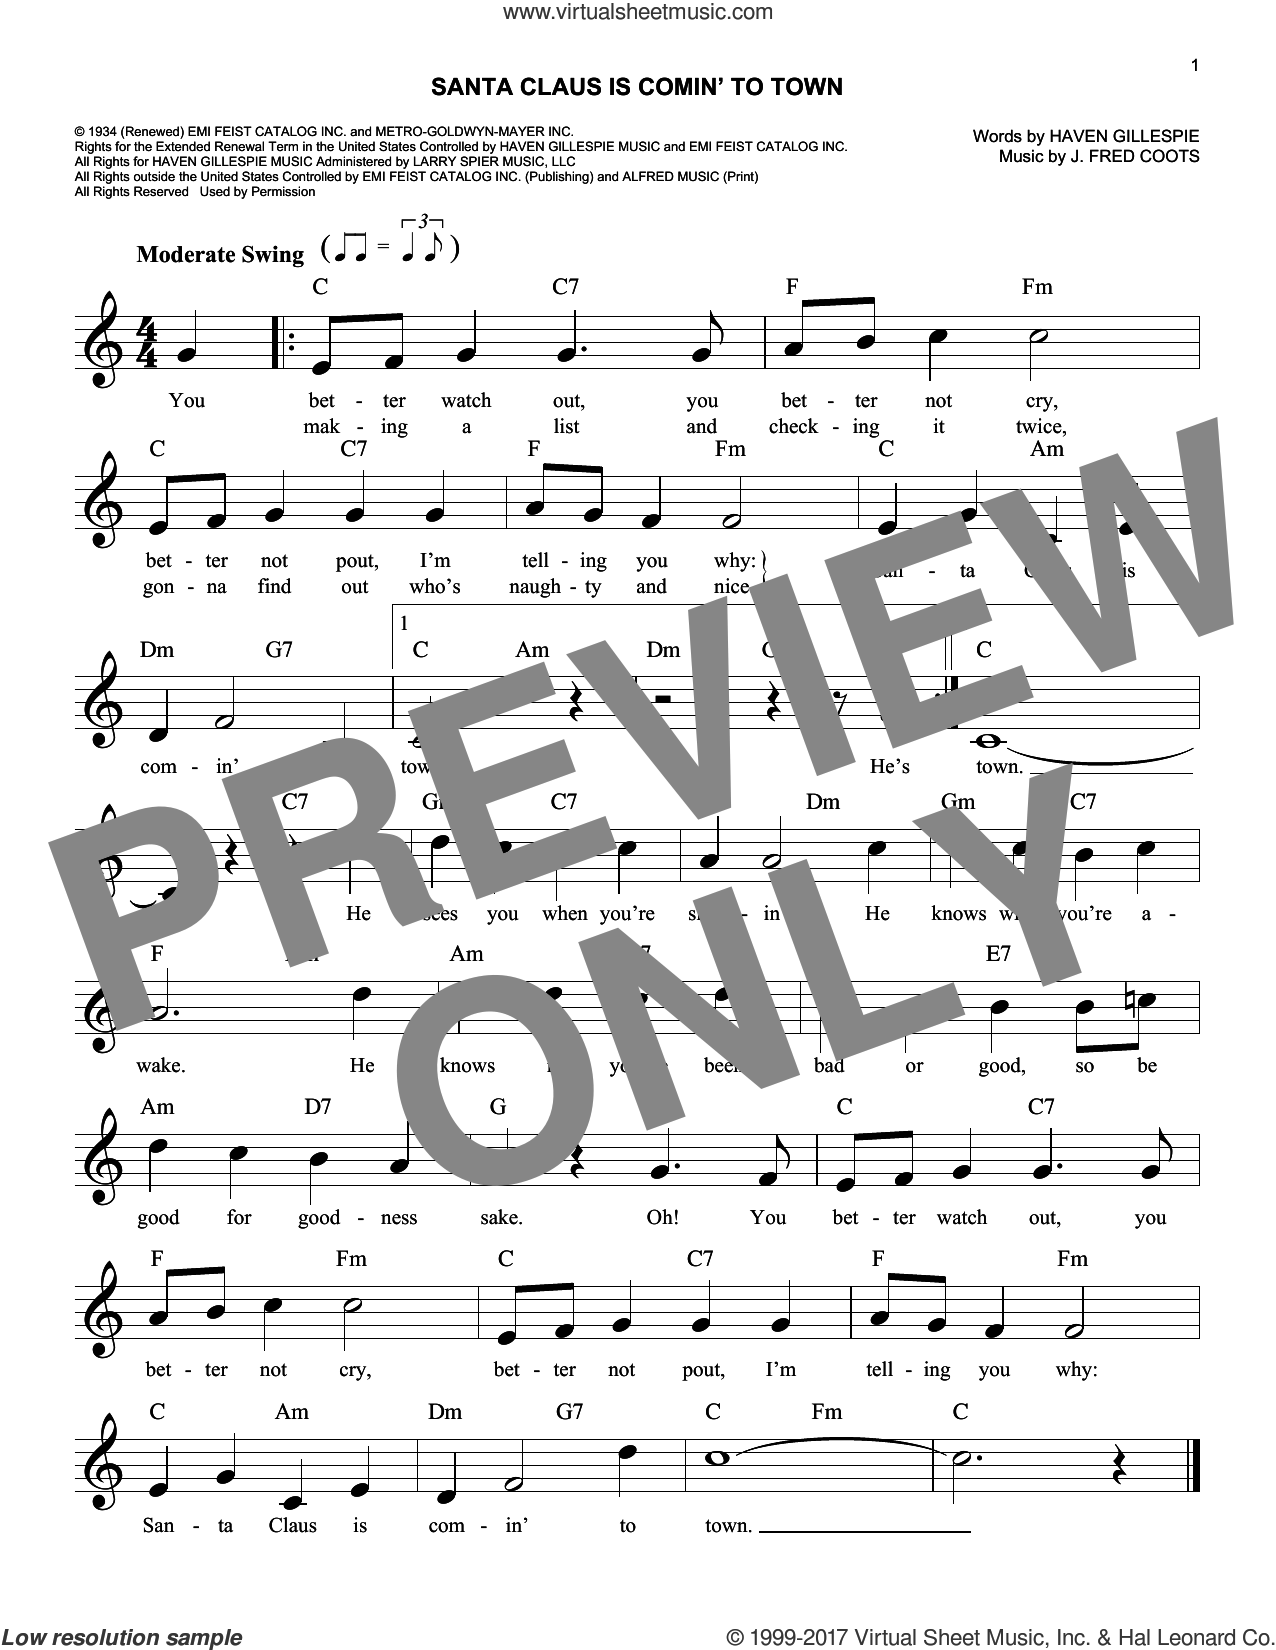 Santa Claus Is Comin' To Town sheet music for voice and other instruments (fake book) by J. Fred Coots and Haven Gillespie, intermediate skill level